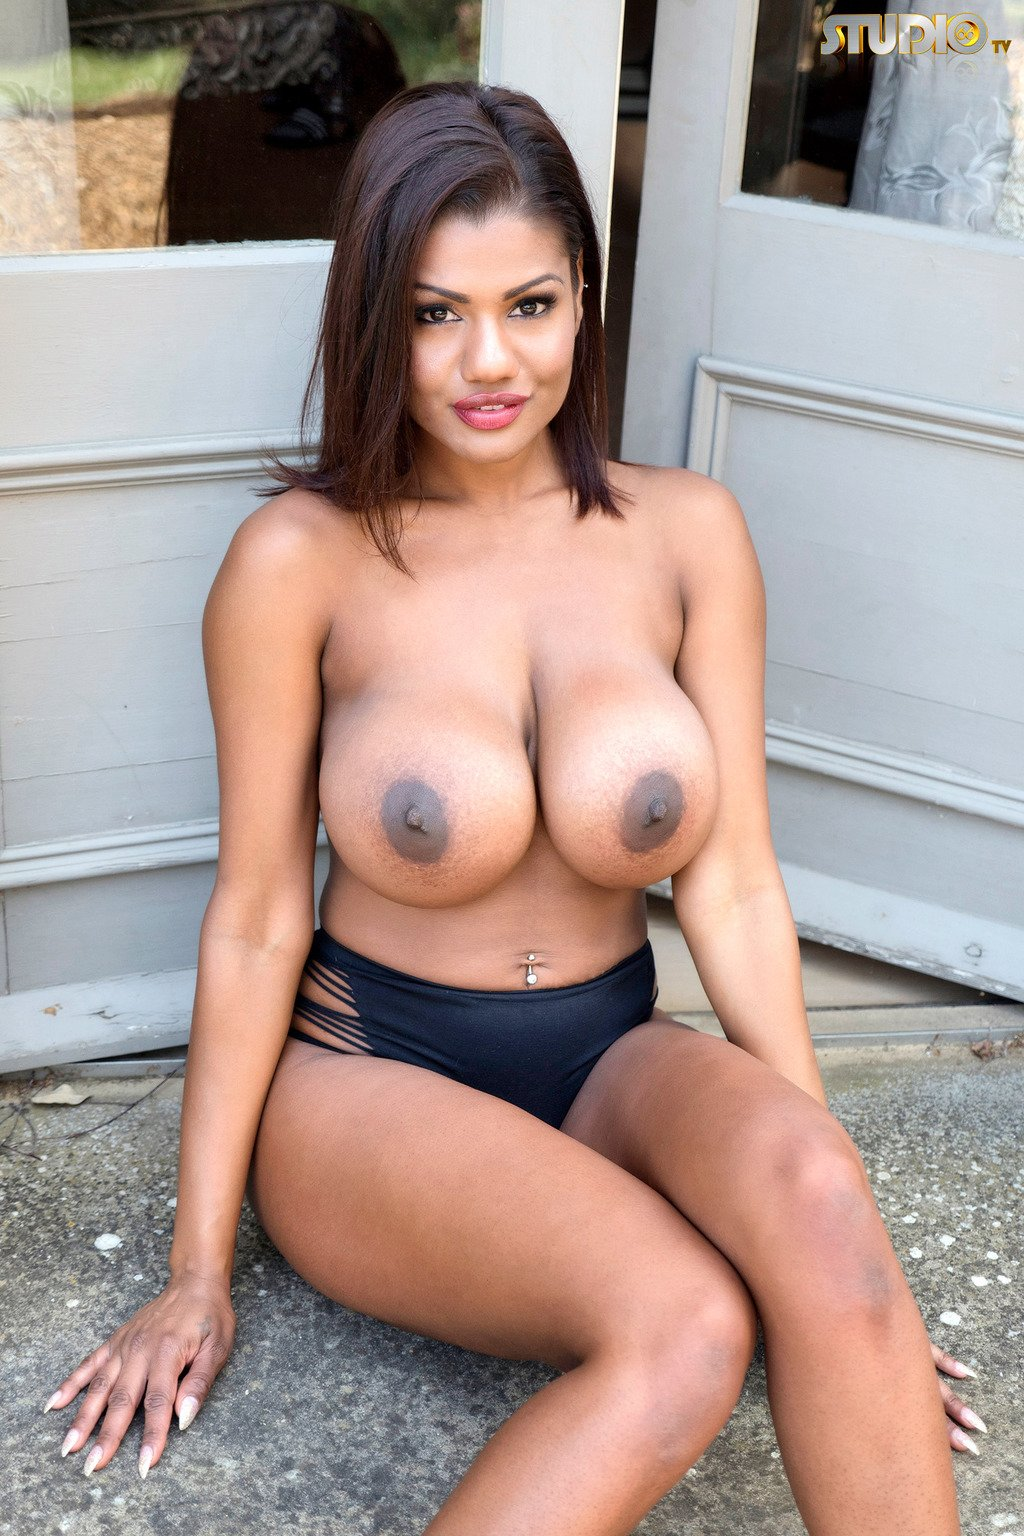 Pee mexican and latina girls with big tits naked female